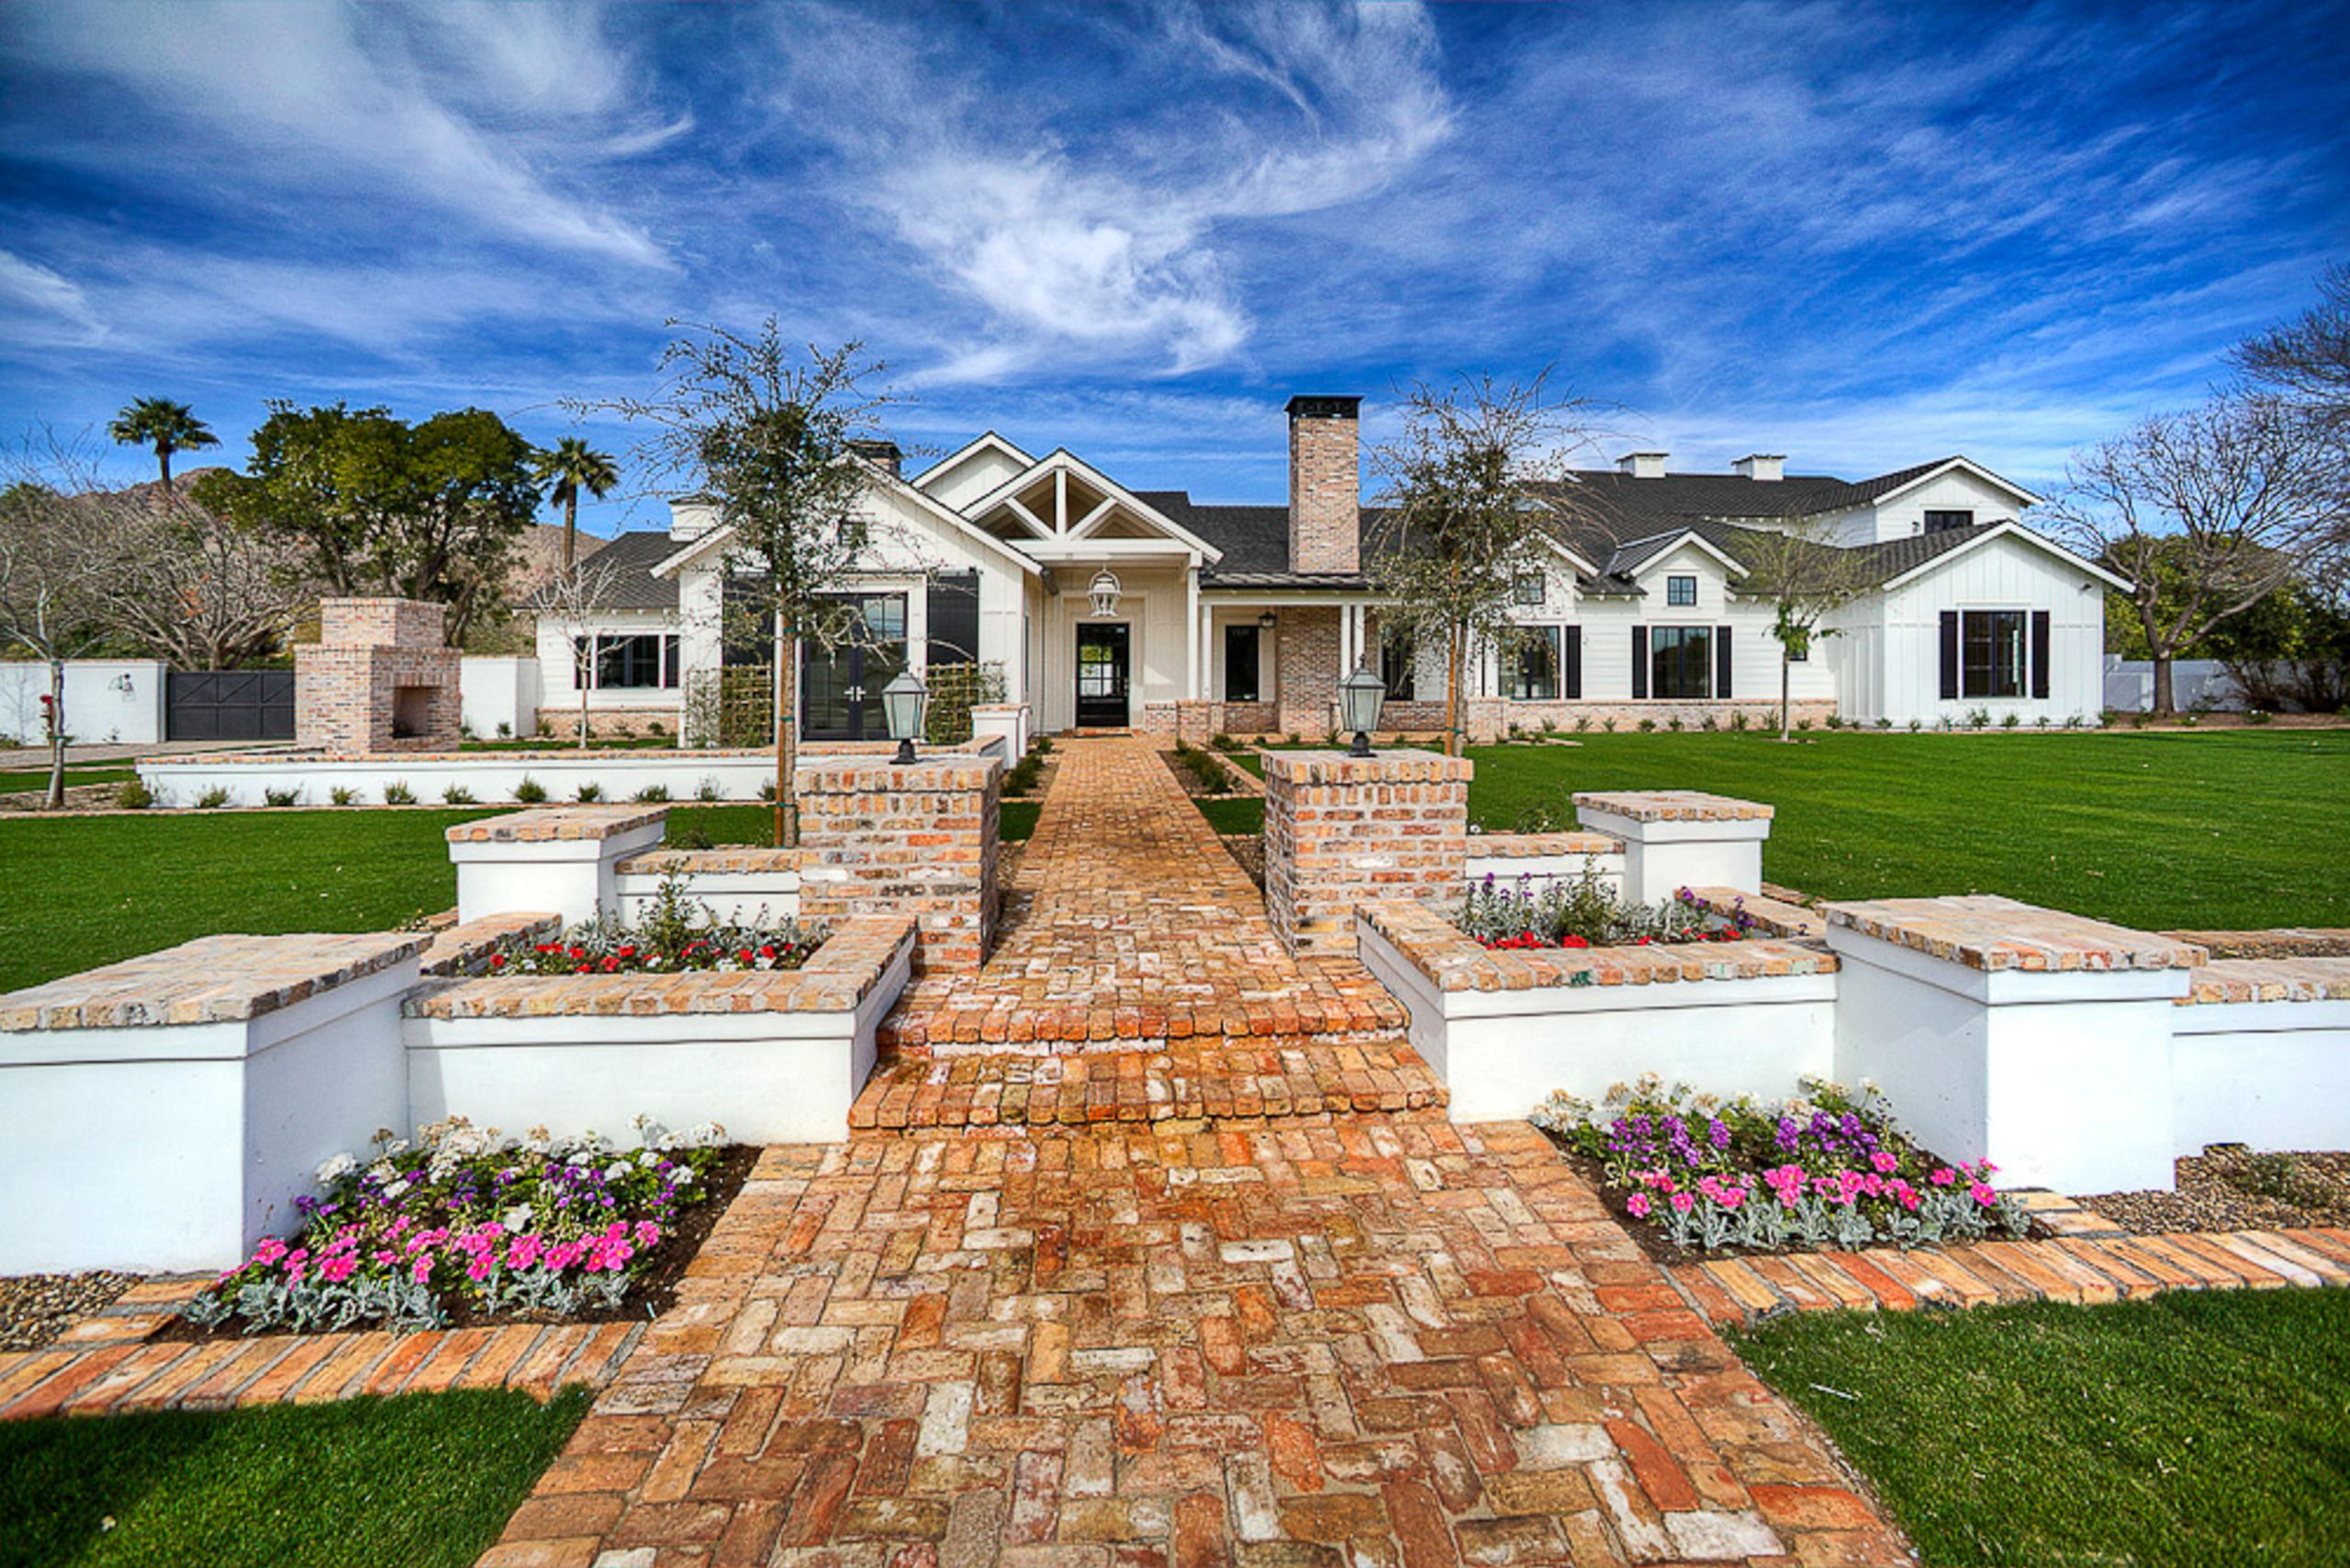 Or a luxury home in Arcadia, Dan can help you find the perfect property!